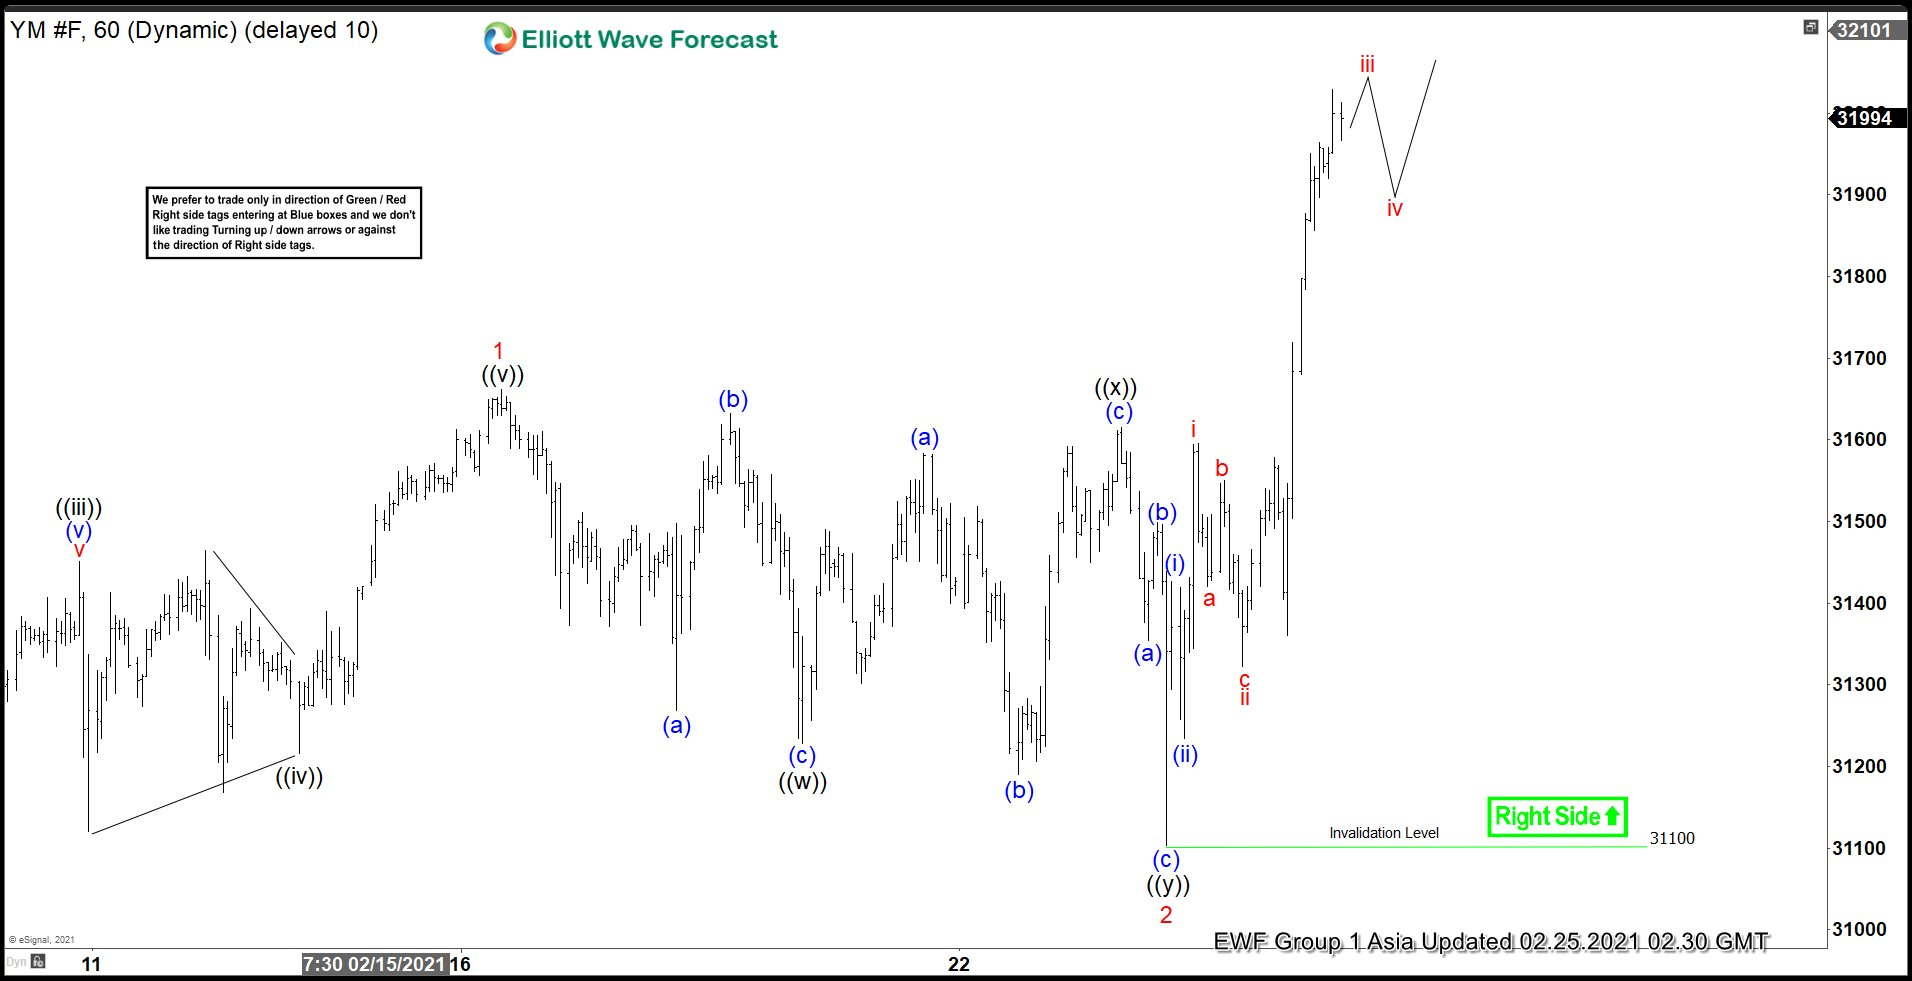 Elliott Wave View: Dow Futures (YM) Should Continue to Print All-Time High